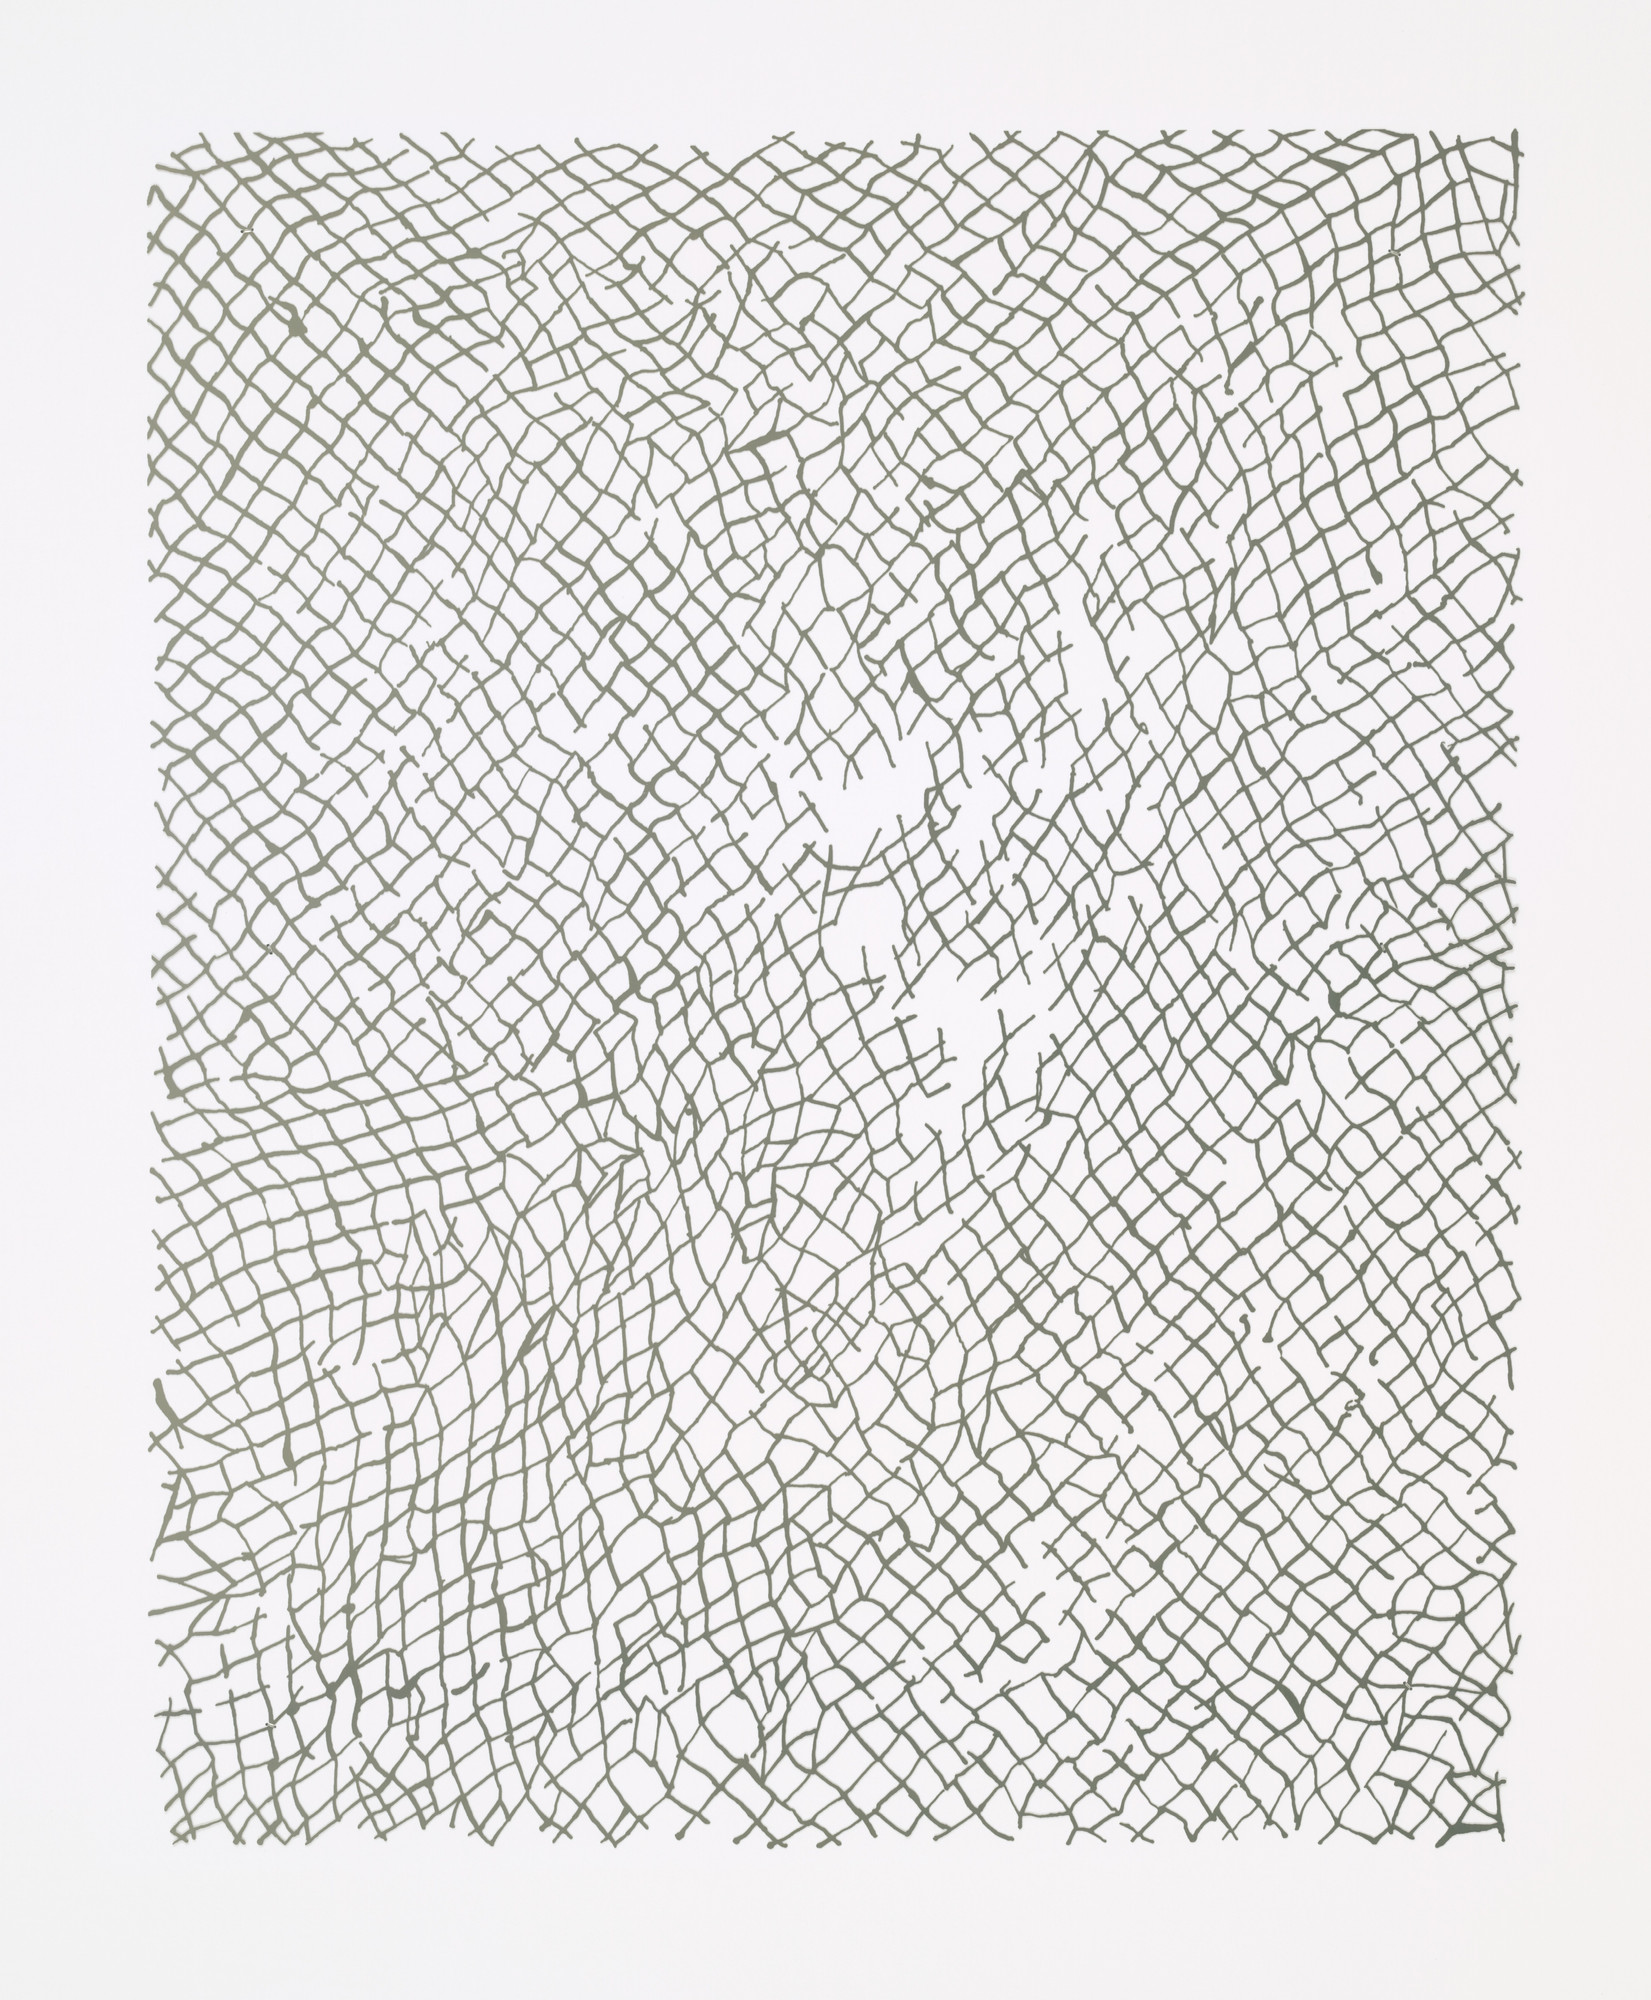 Rachel Whiteread. Untitled (Nets). 2002